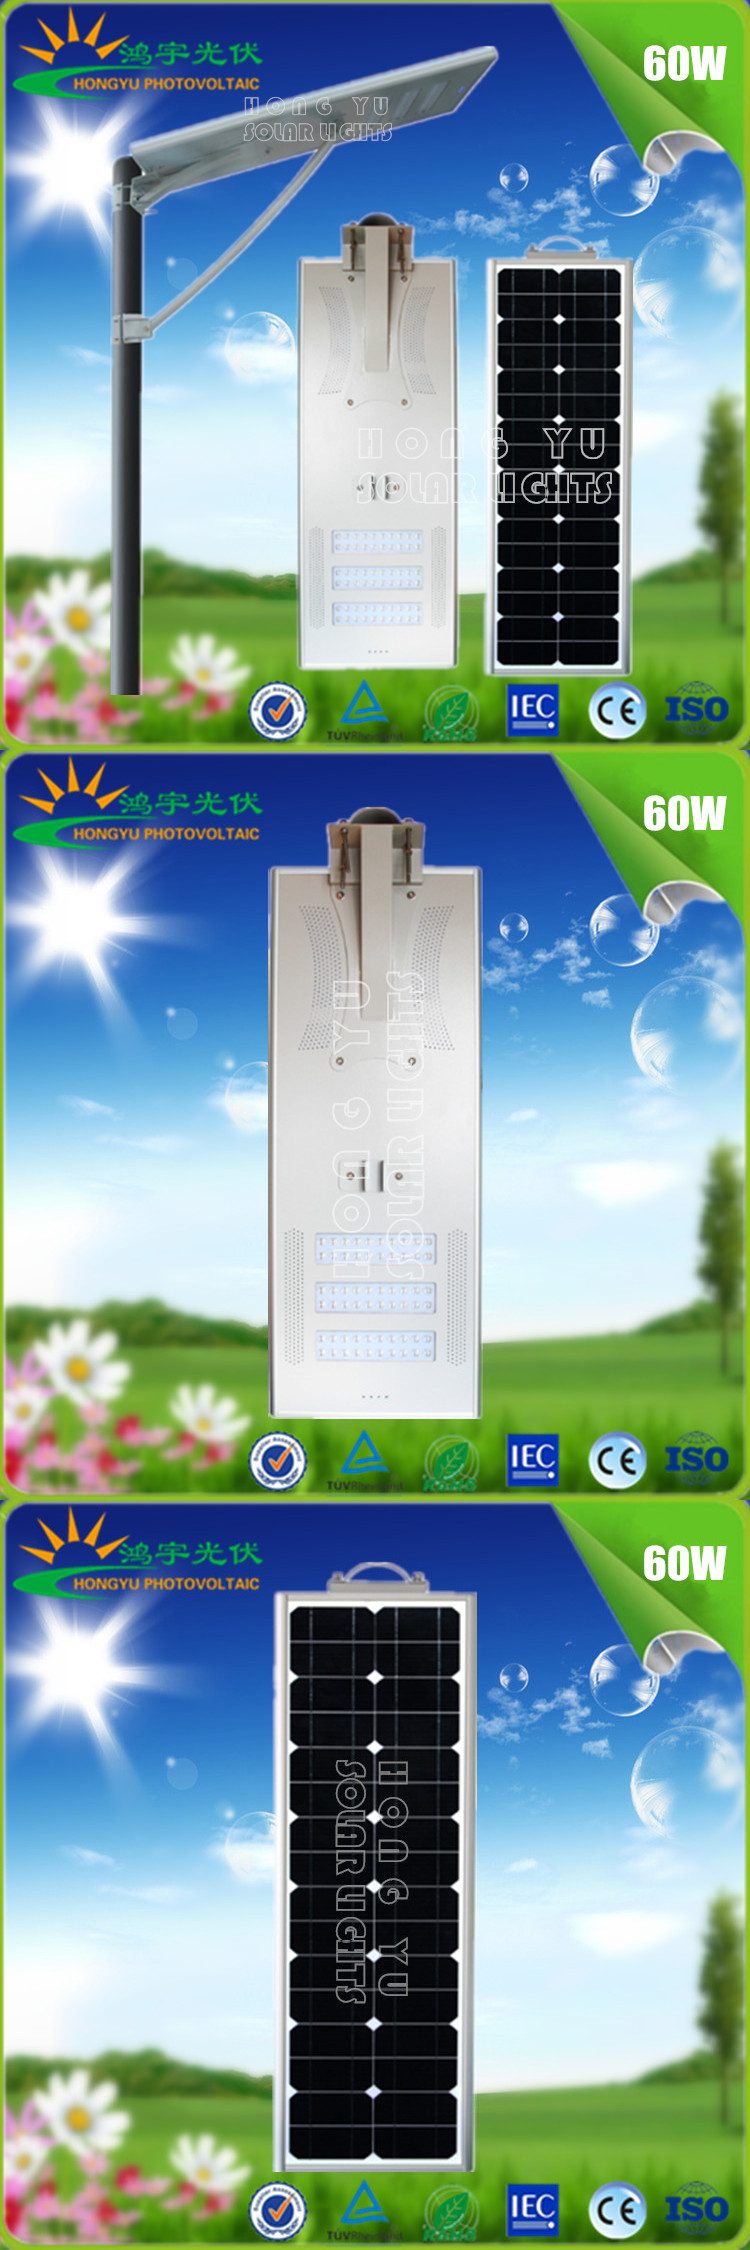 60W outdoor all in one Integrated LED Solar Street Lamp/light with Motion Sensor for Garden